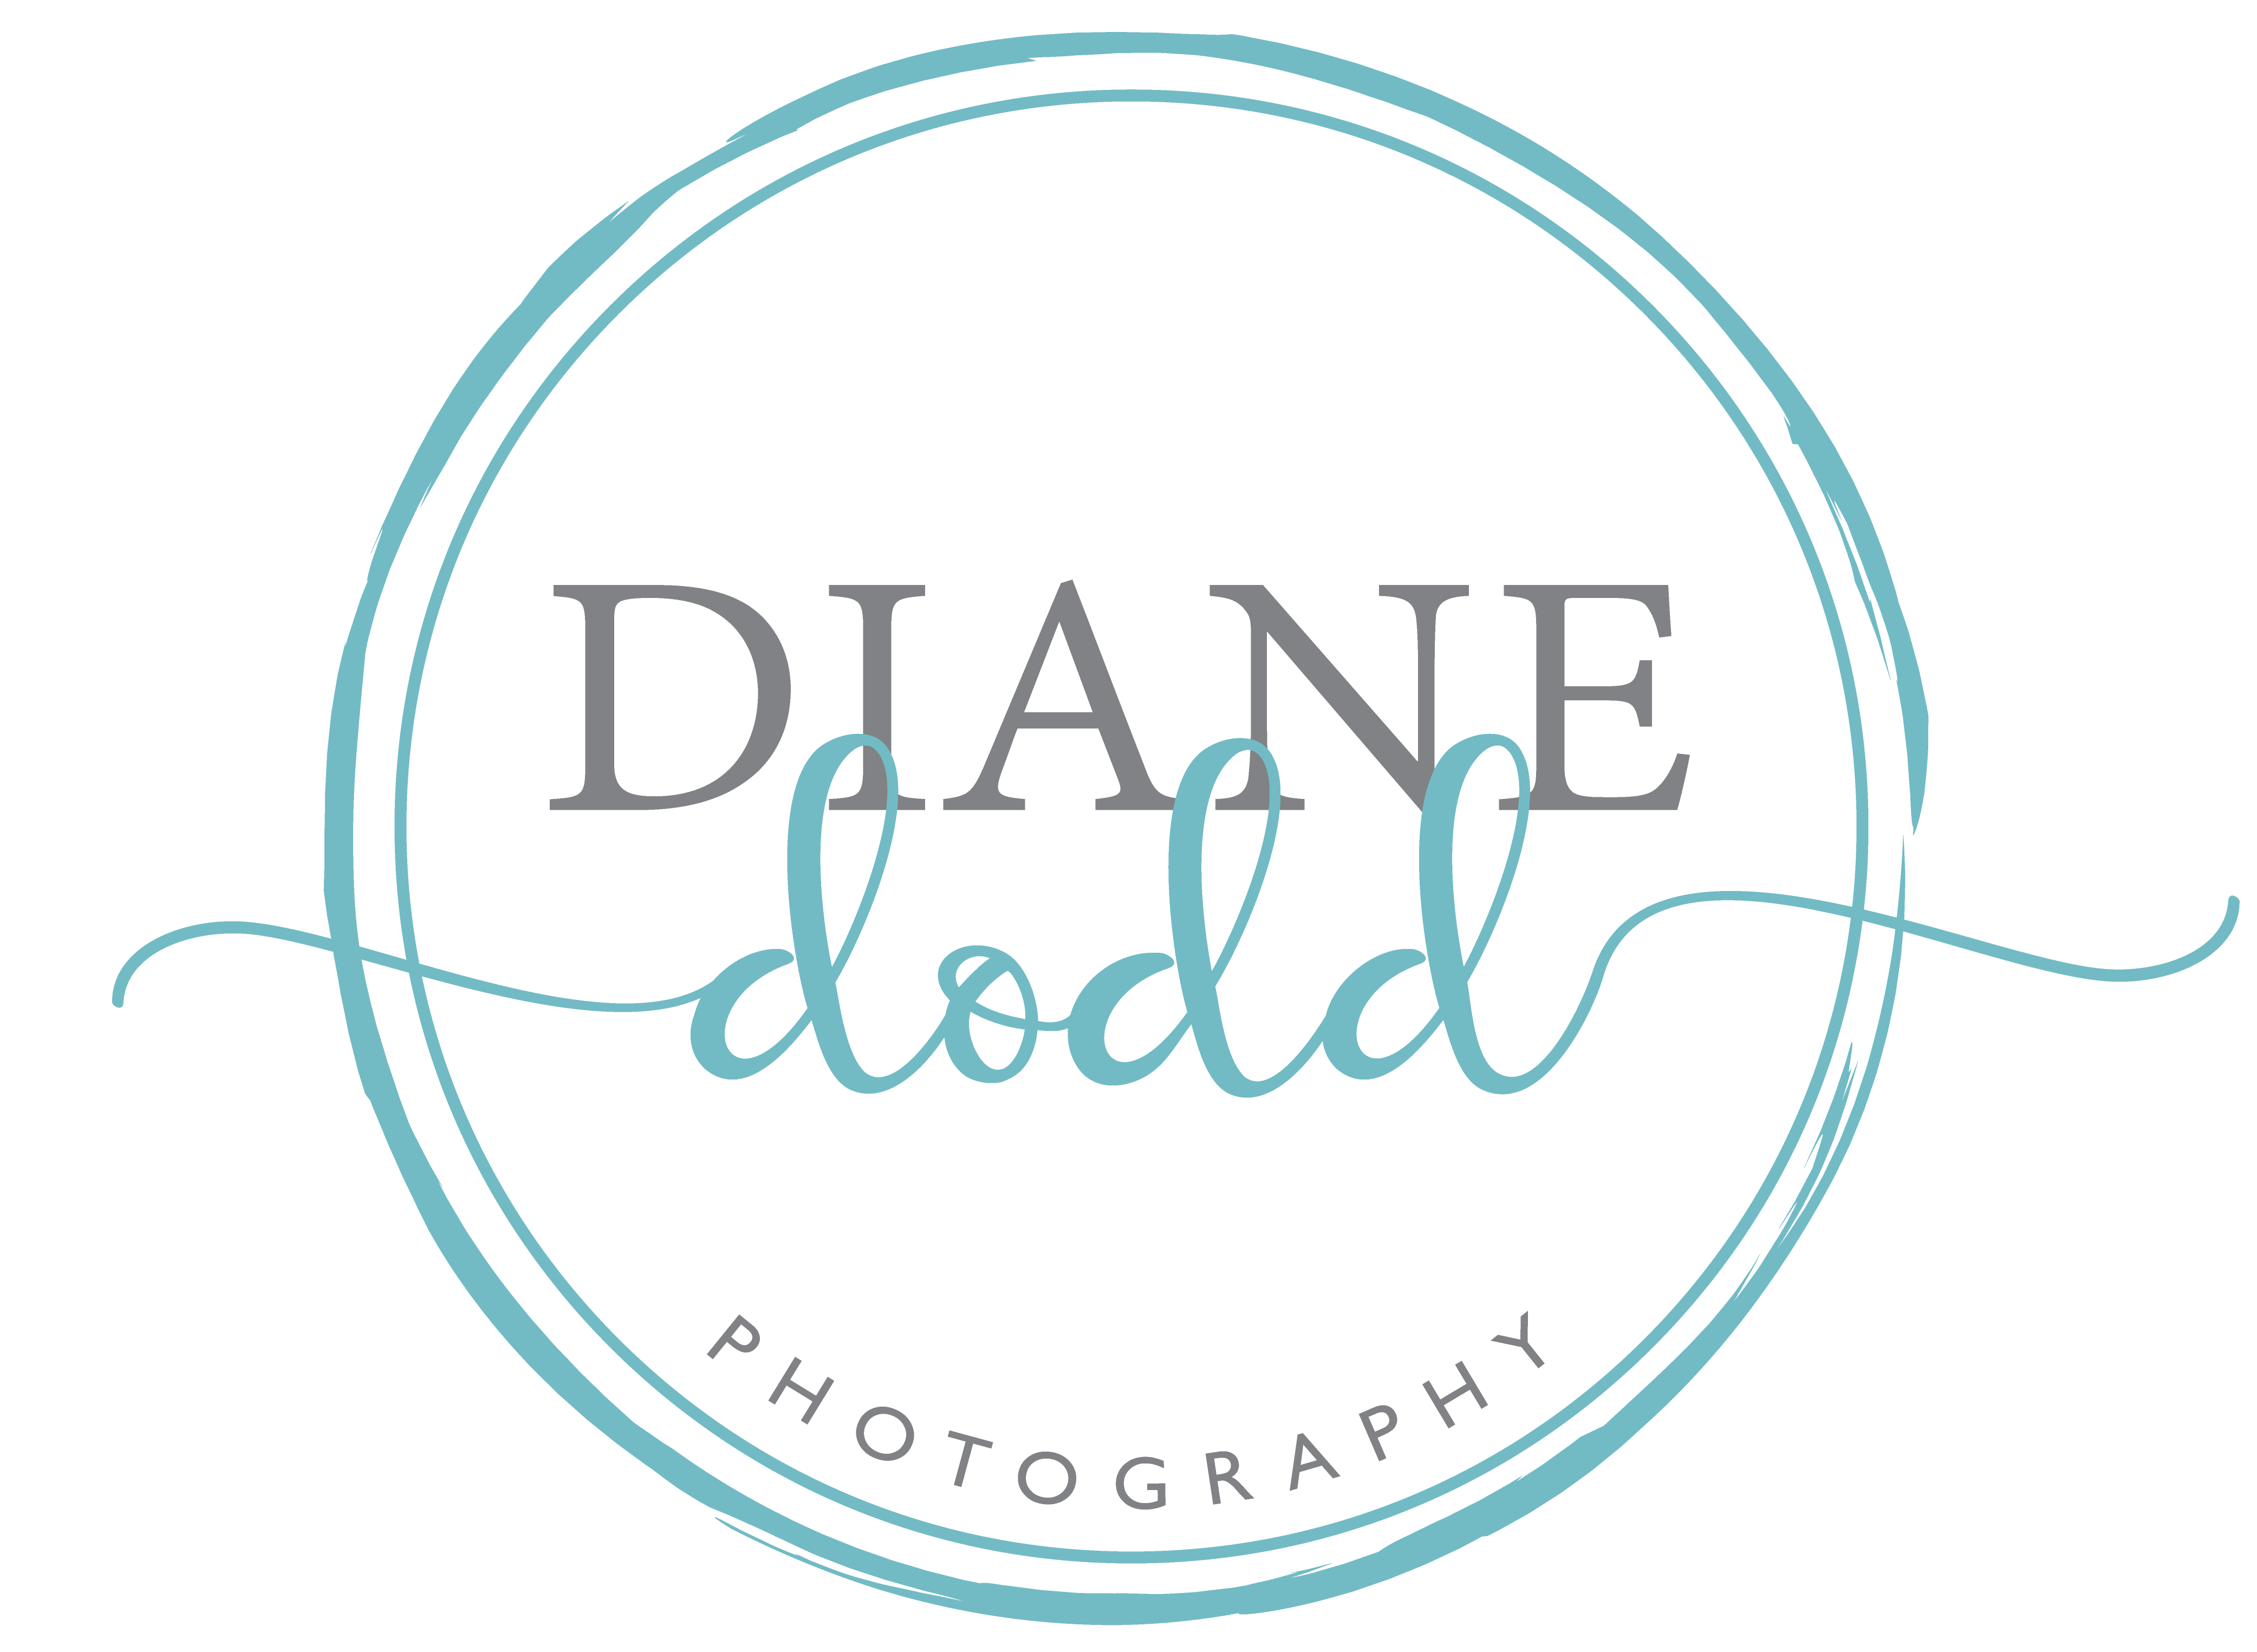 Diane Dodd Photography